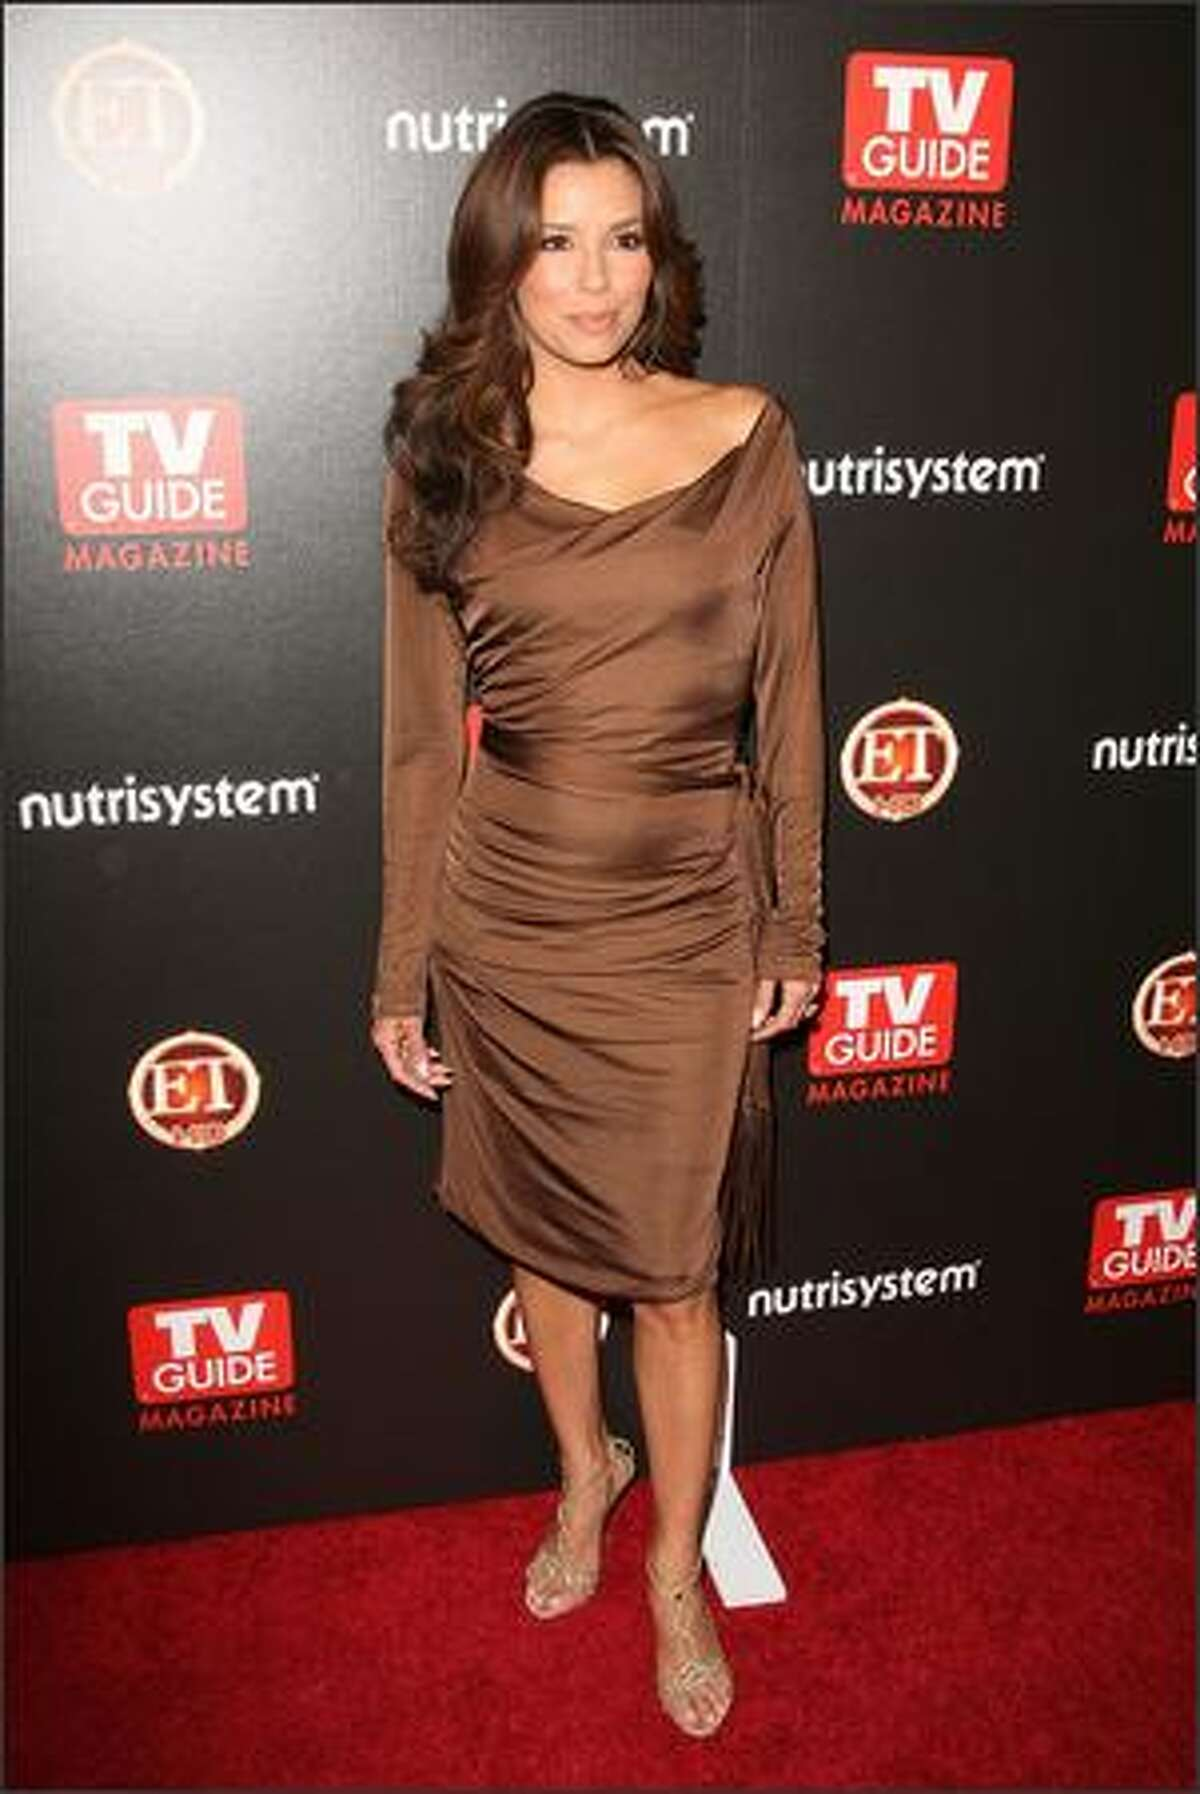 Actress Eva Longoria Parker arrives at TV Guide's sexiest stars party held at the Sunset Tower Hotel in Hollywood, Calif., on Tuesday, March 24, 2009.